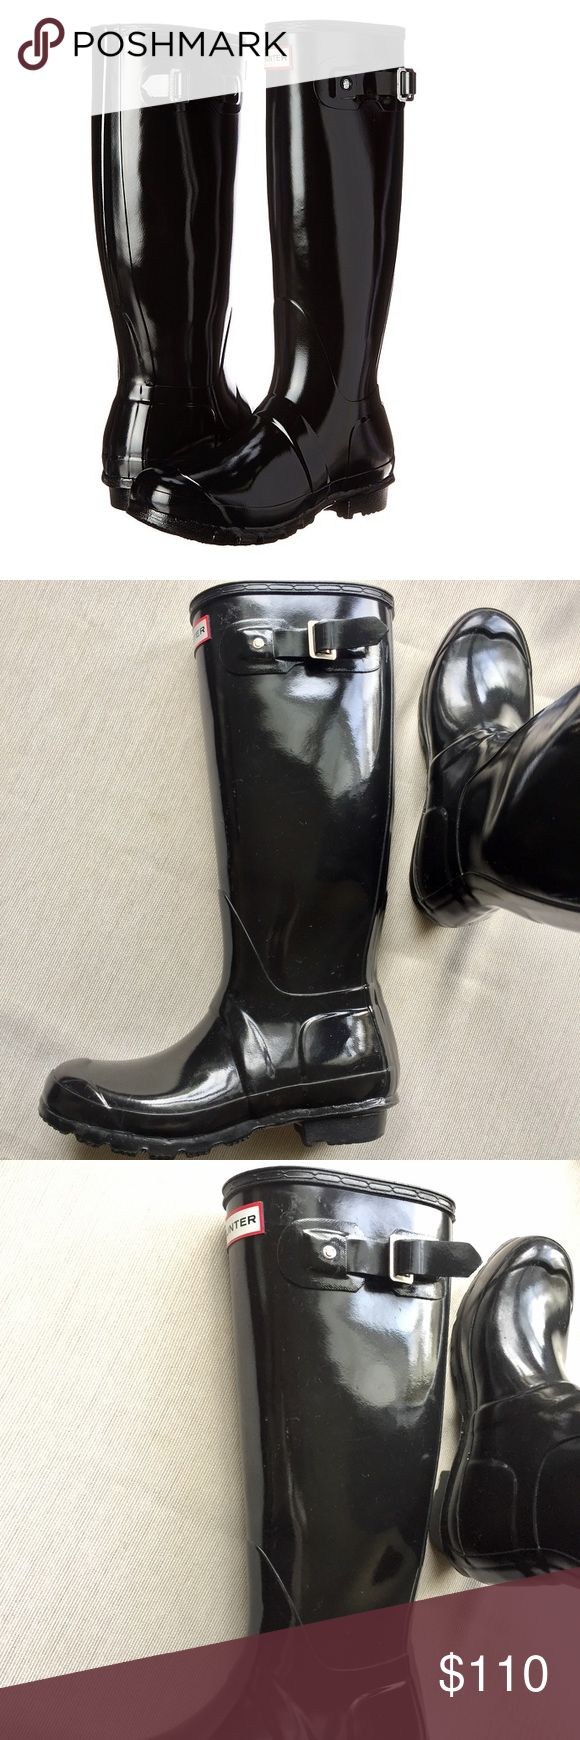 """Black gloss tall hunter rain boots Black gloss tall hunter rain boots in good used condition. Size 6. Please feel free to ask questions. Rubber sole Approx. 15.75"""" boot shaft height Approx. 14.5"""" boot shaft circumference Approx. 1"""" heel height Hunter Boots Shoes Winter & Rain Boots"""